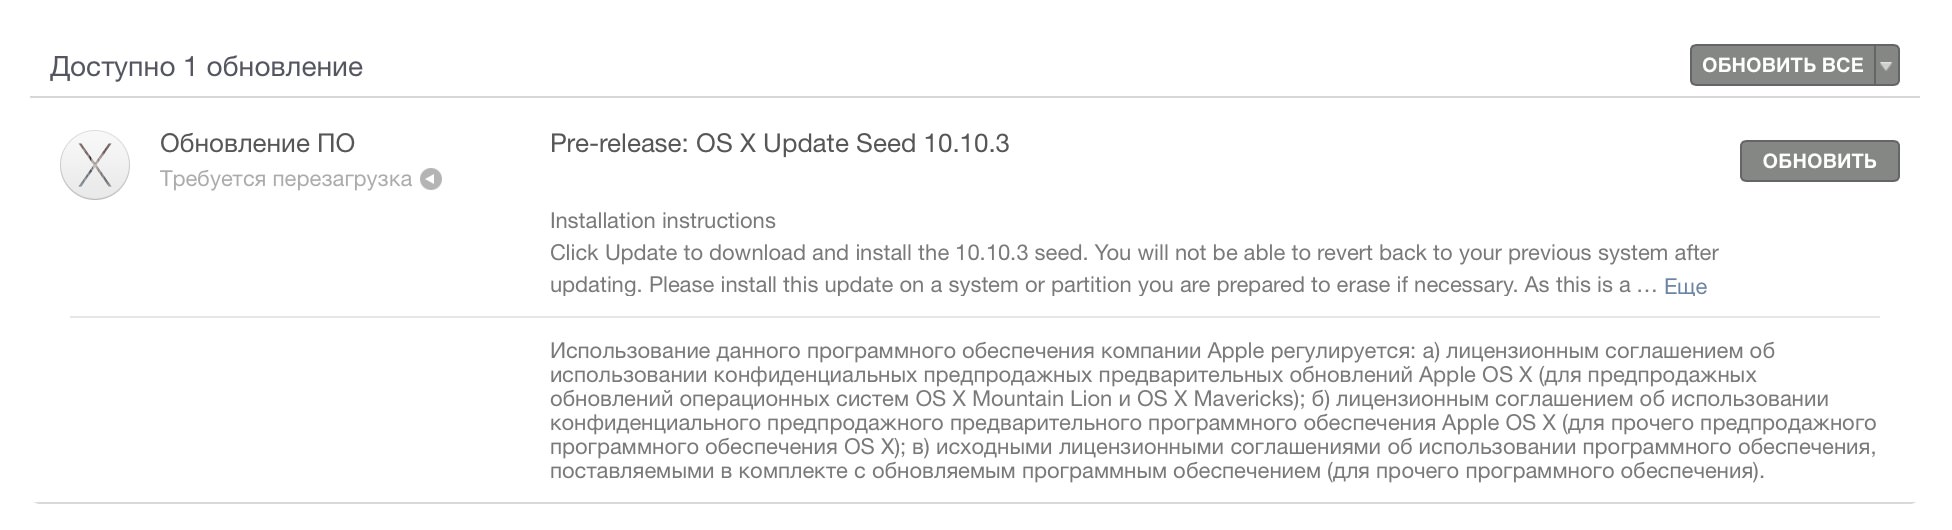 Mac App Store update OS X 10.10.3 free user Russia 2